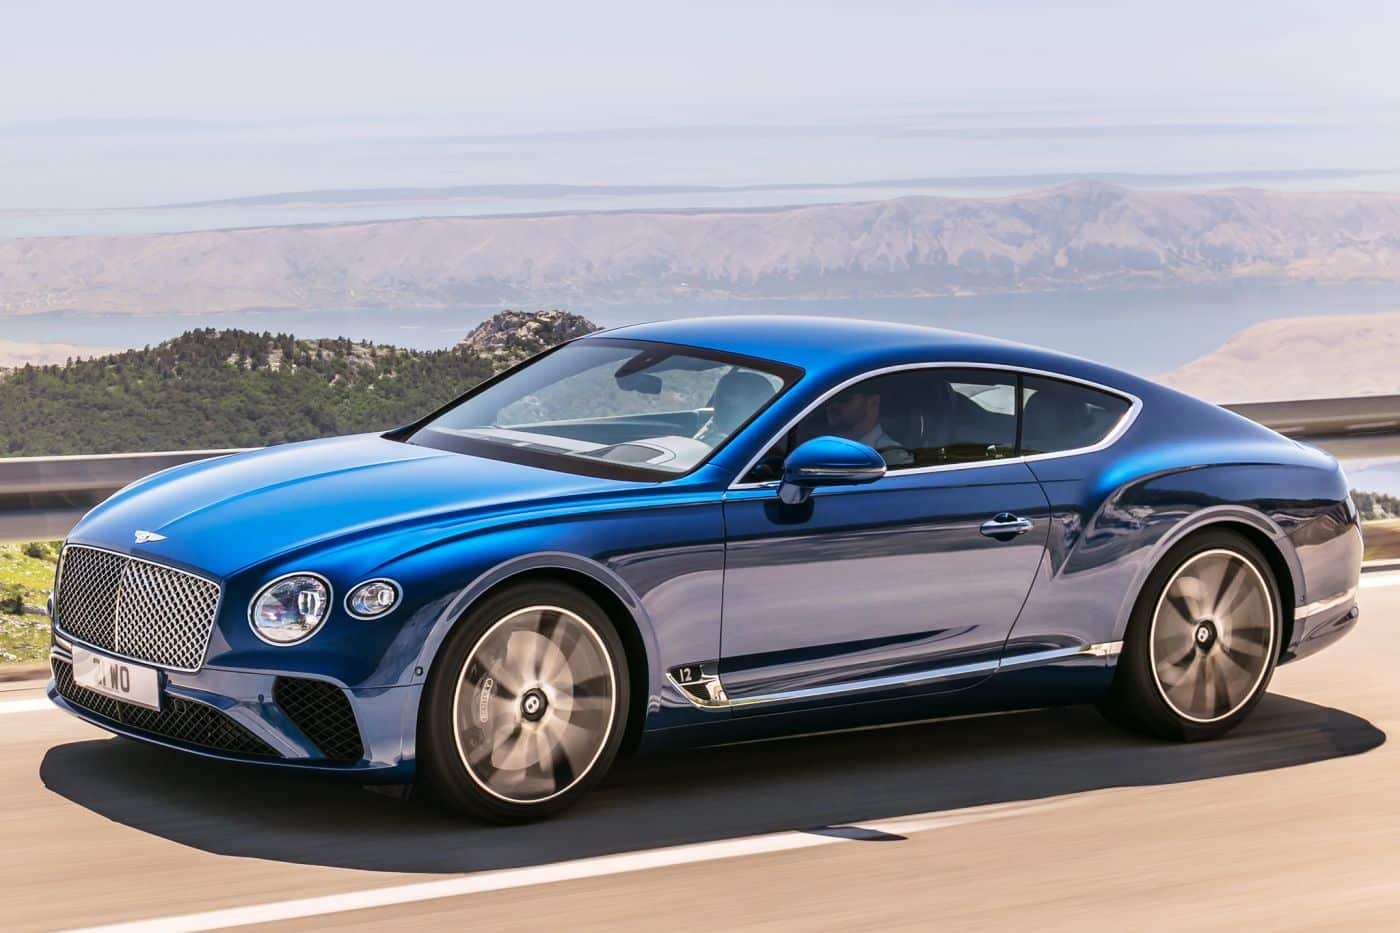 2019 Bentley Continental Gt New Release With Price Amp Specs